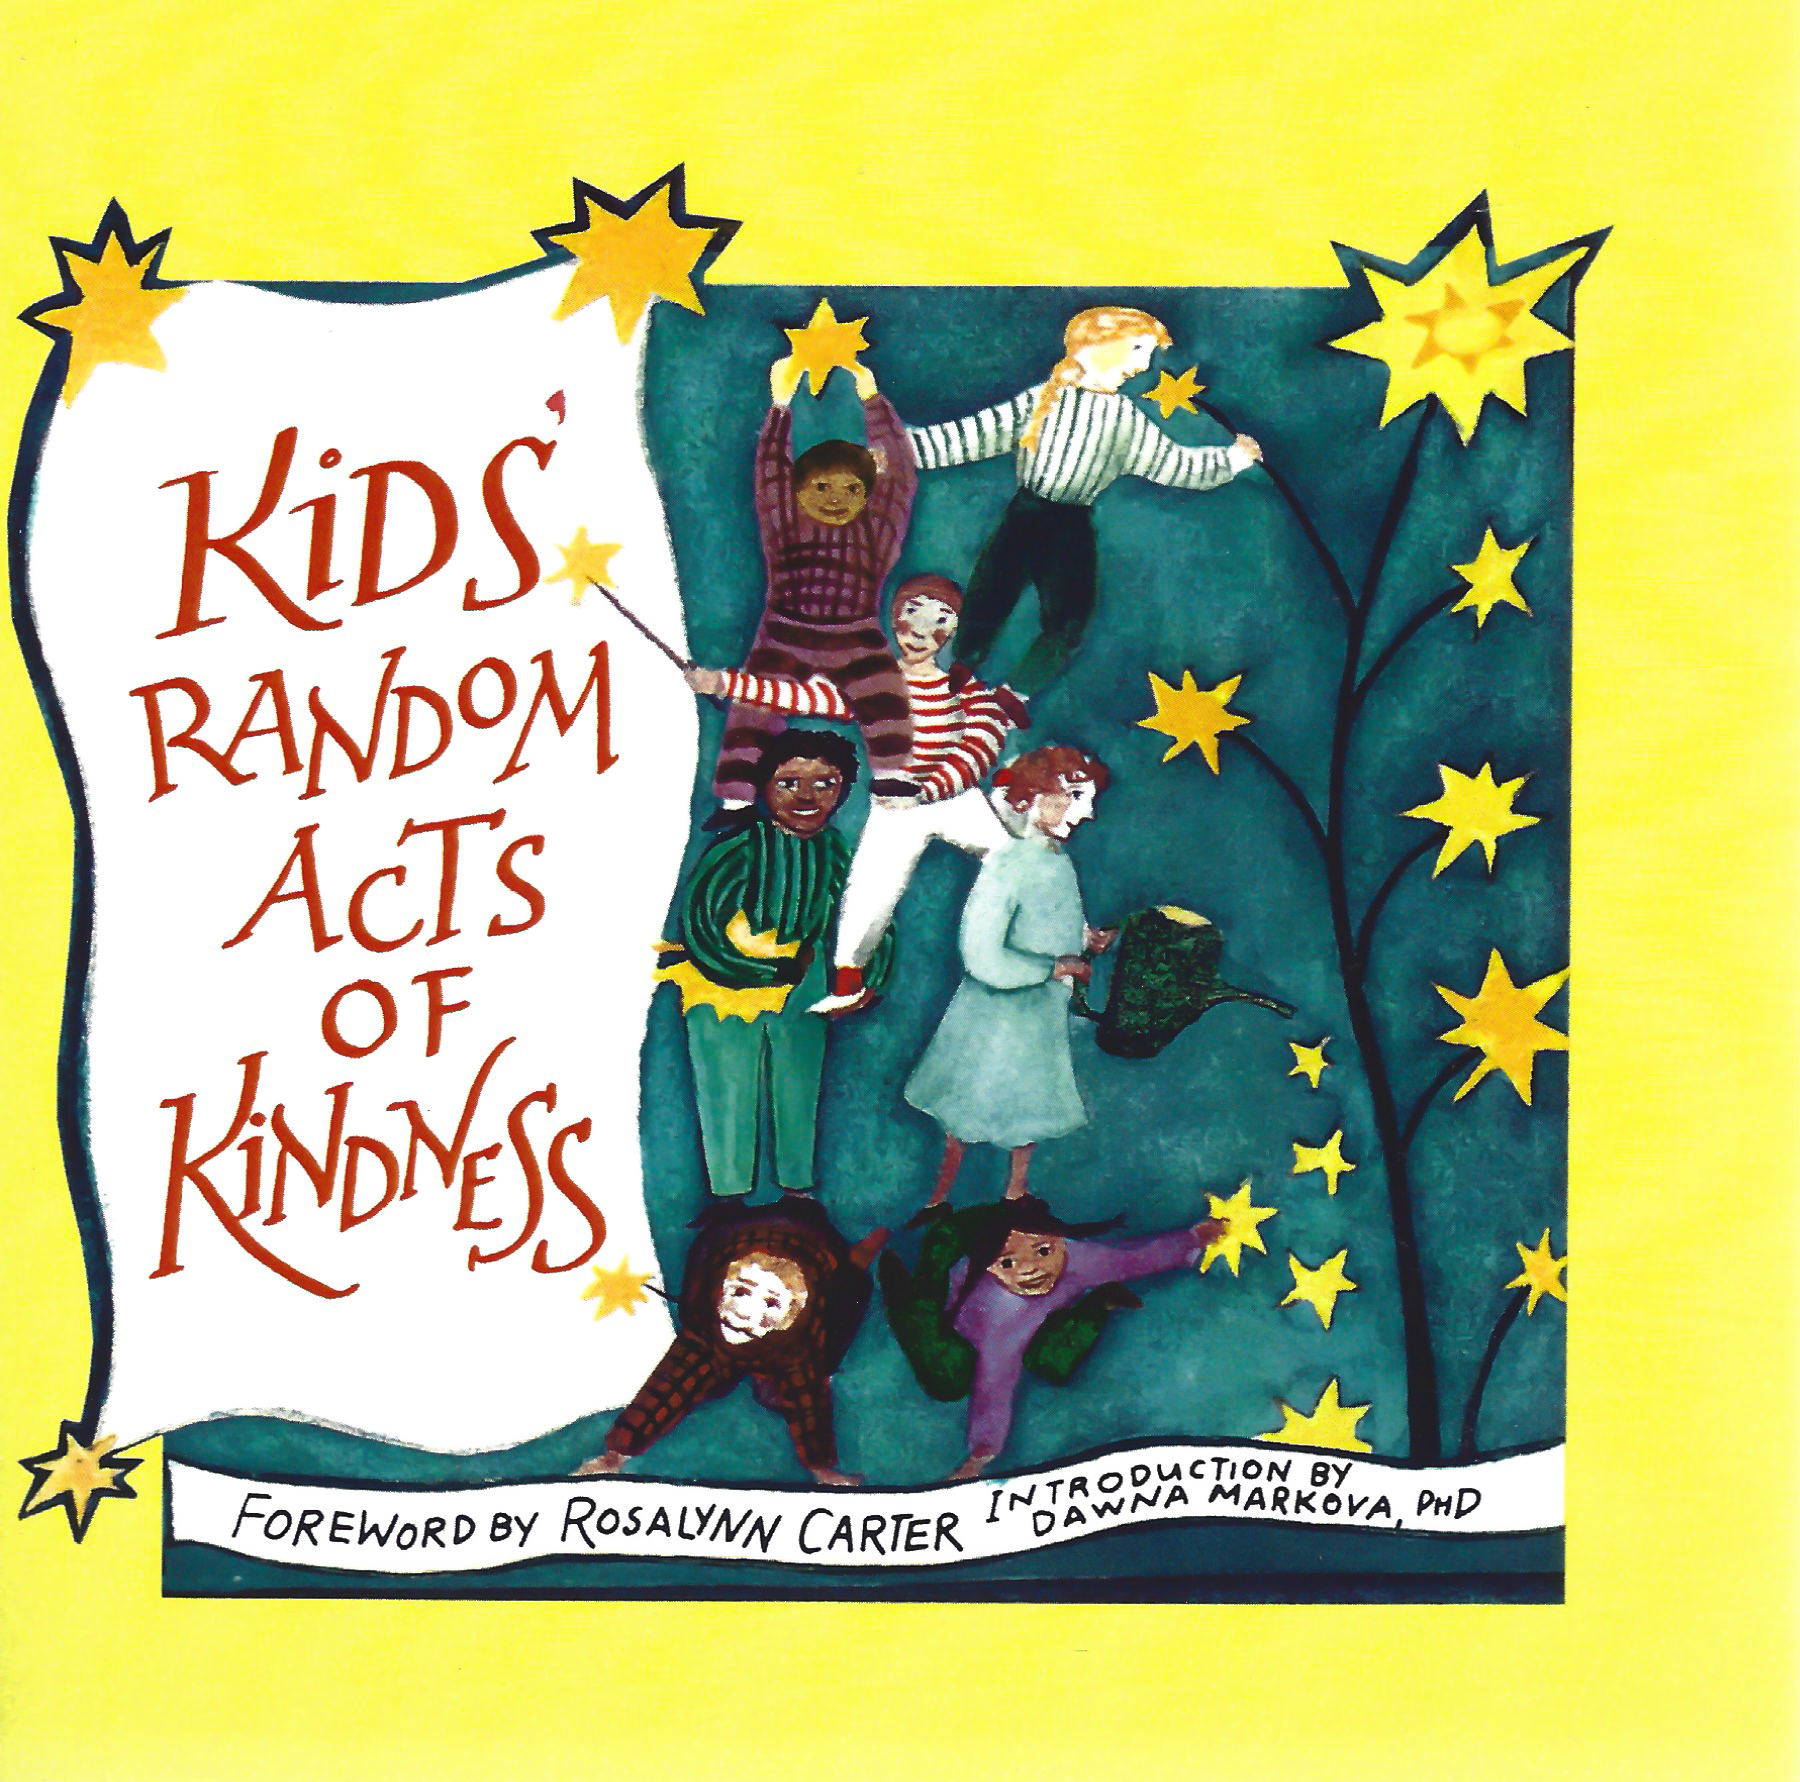 Kids' Random Acts of Kindness | Dawna Markova, PhD